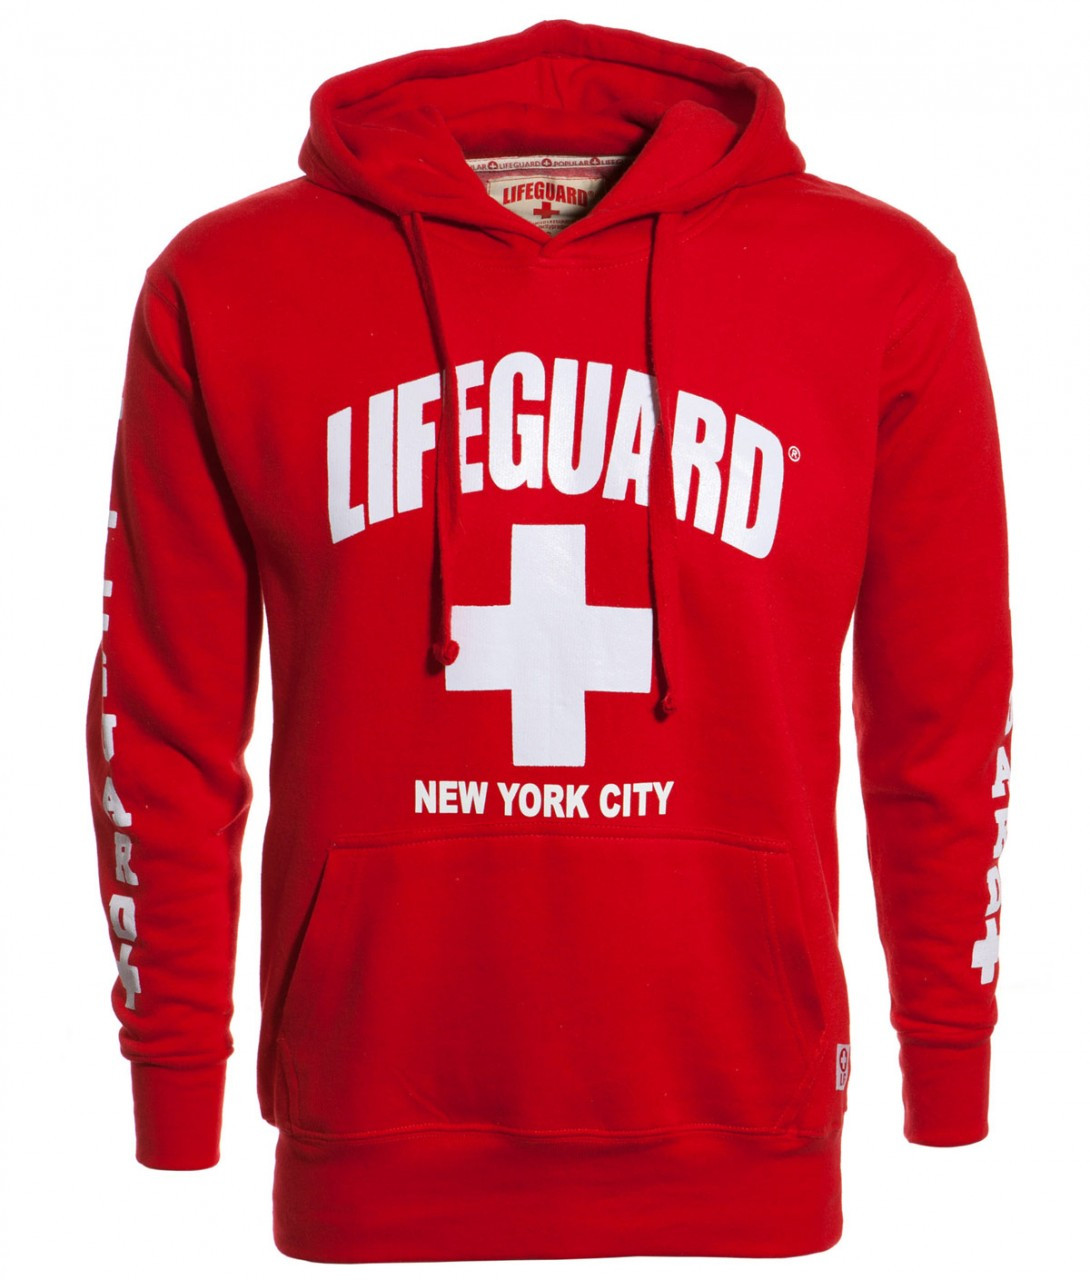 LIFEGUARD New York City Red Hoodie  supplier